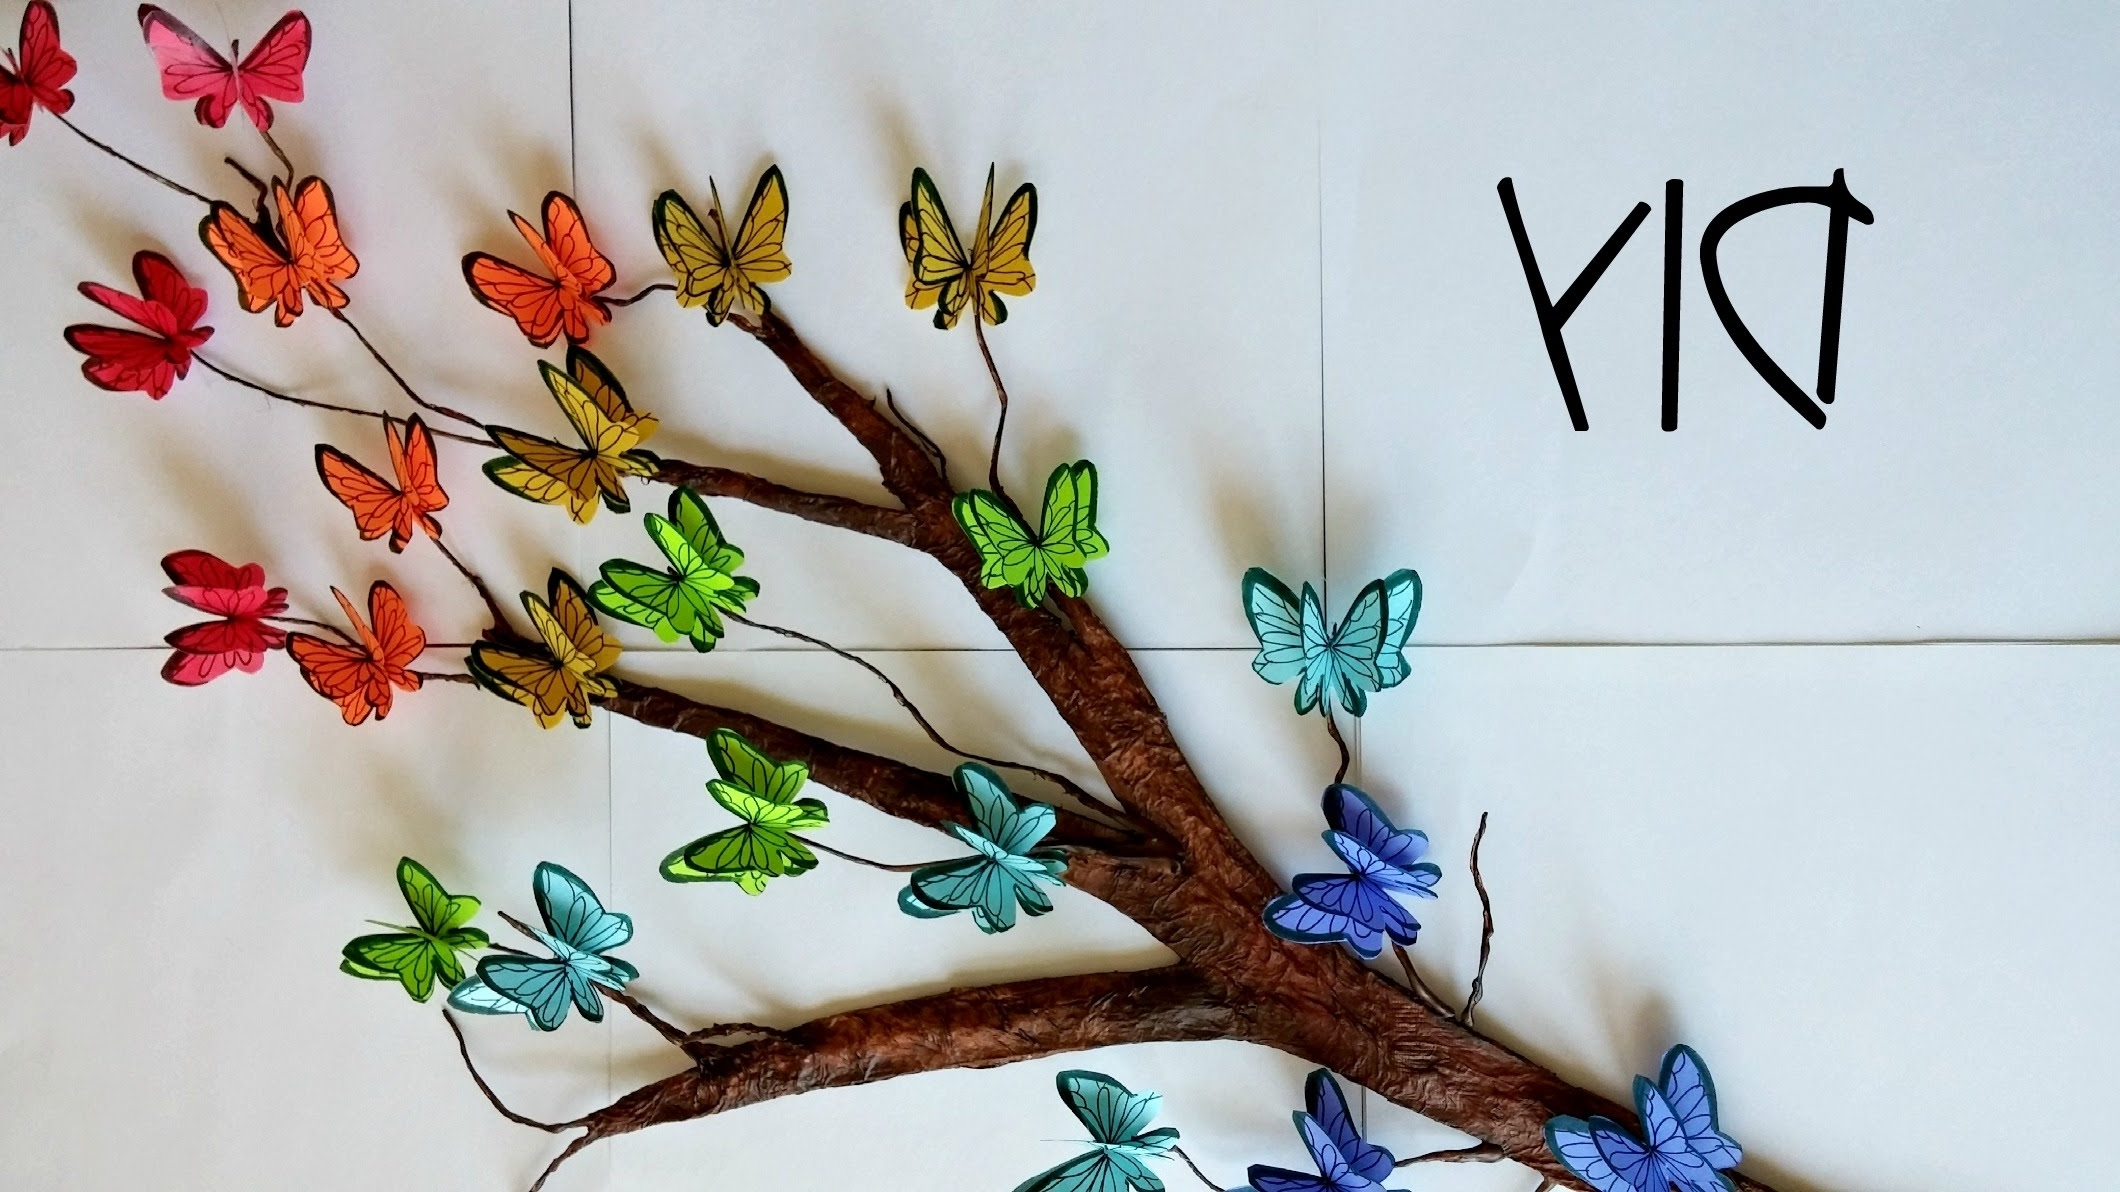 Diy Tree Branch + 3D Butterflies ♥ // Room Decor – Youtube Intended For Most Popular Diy 3D Wall Art Butterflies (View 9 of 15)